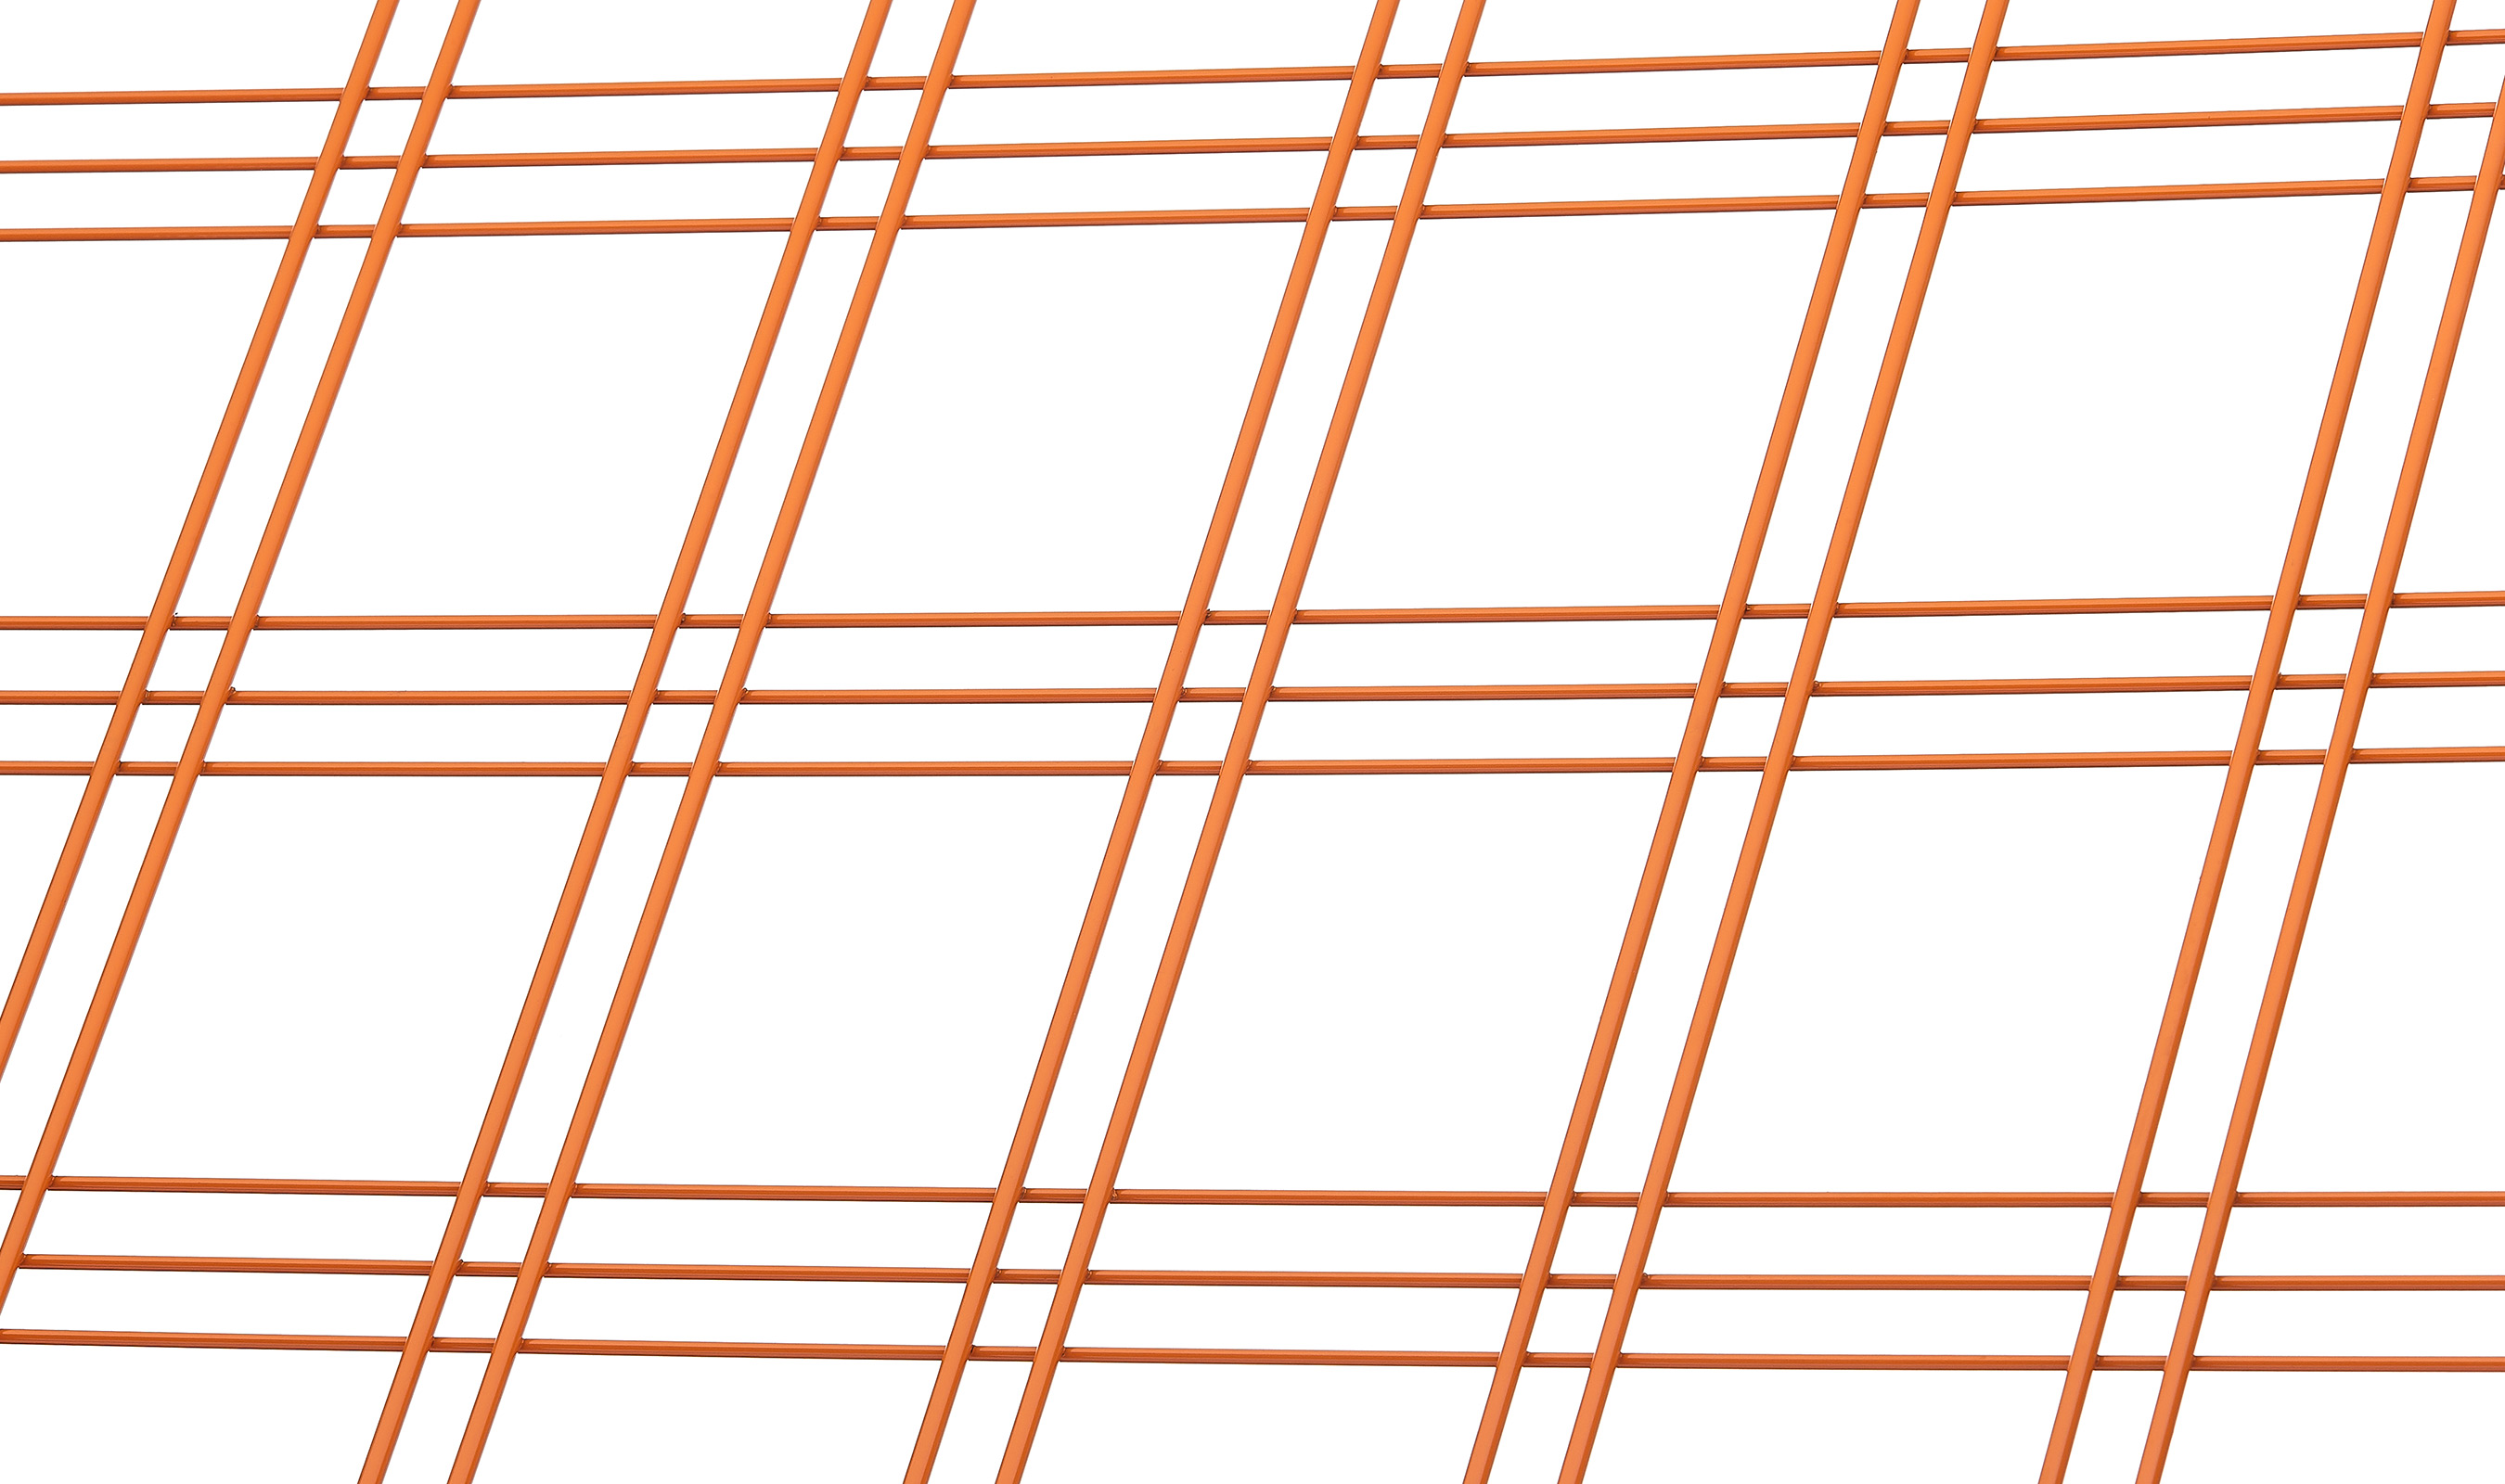 WDZ-542 Ornamental Welded Wire Mesh